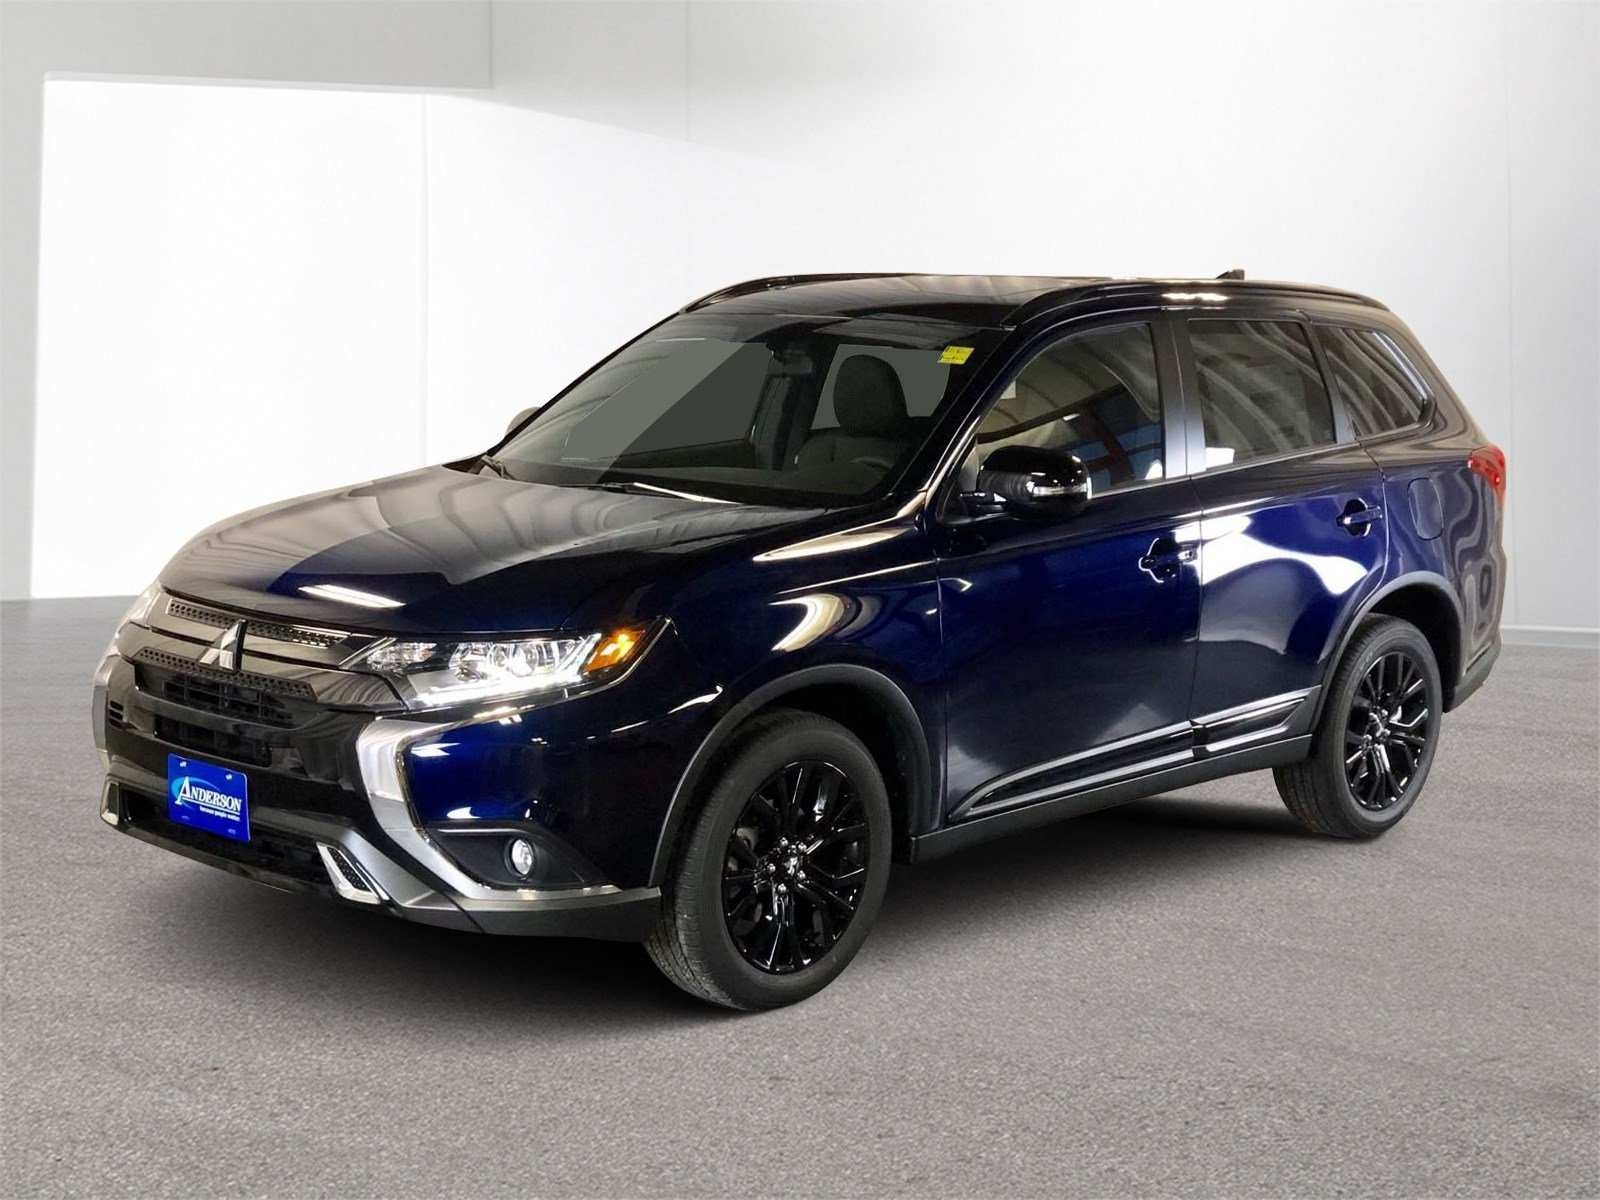 75 All New 2019 Mitsubishi Outlander Se Engine